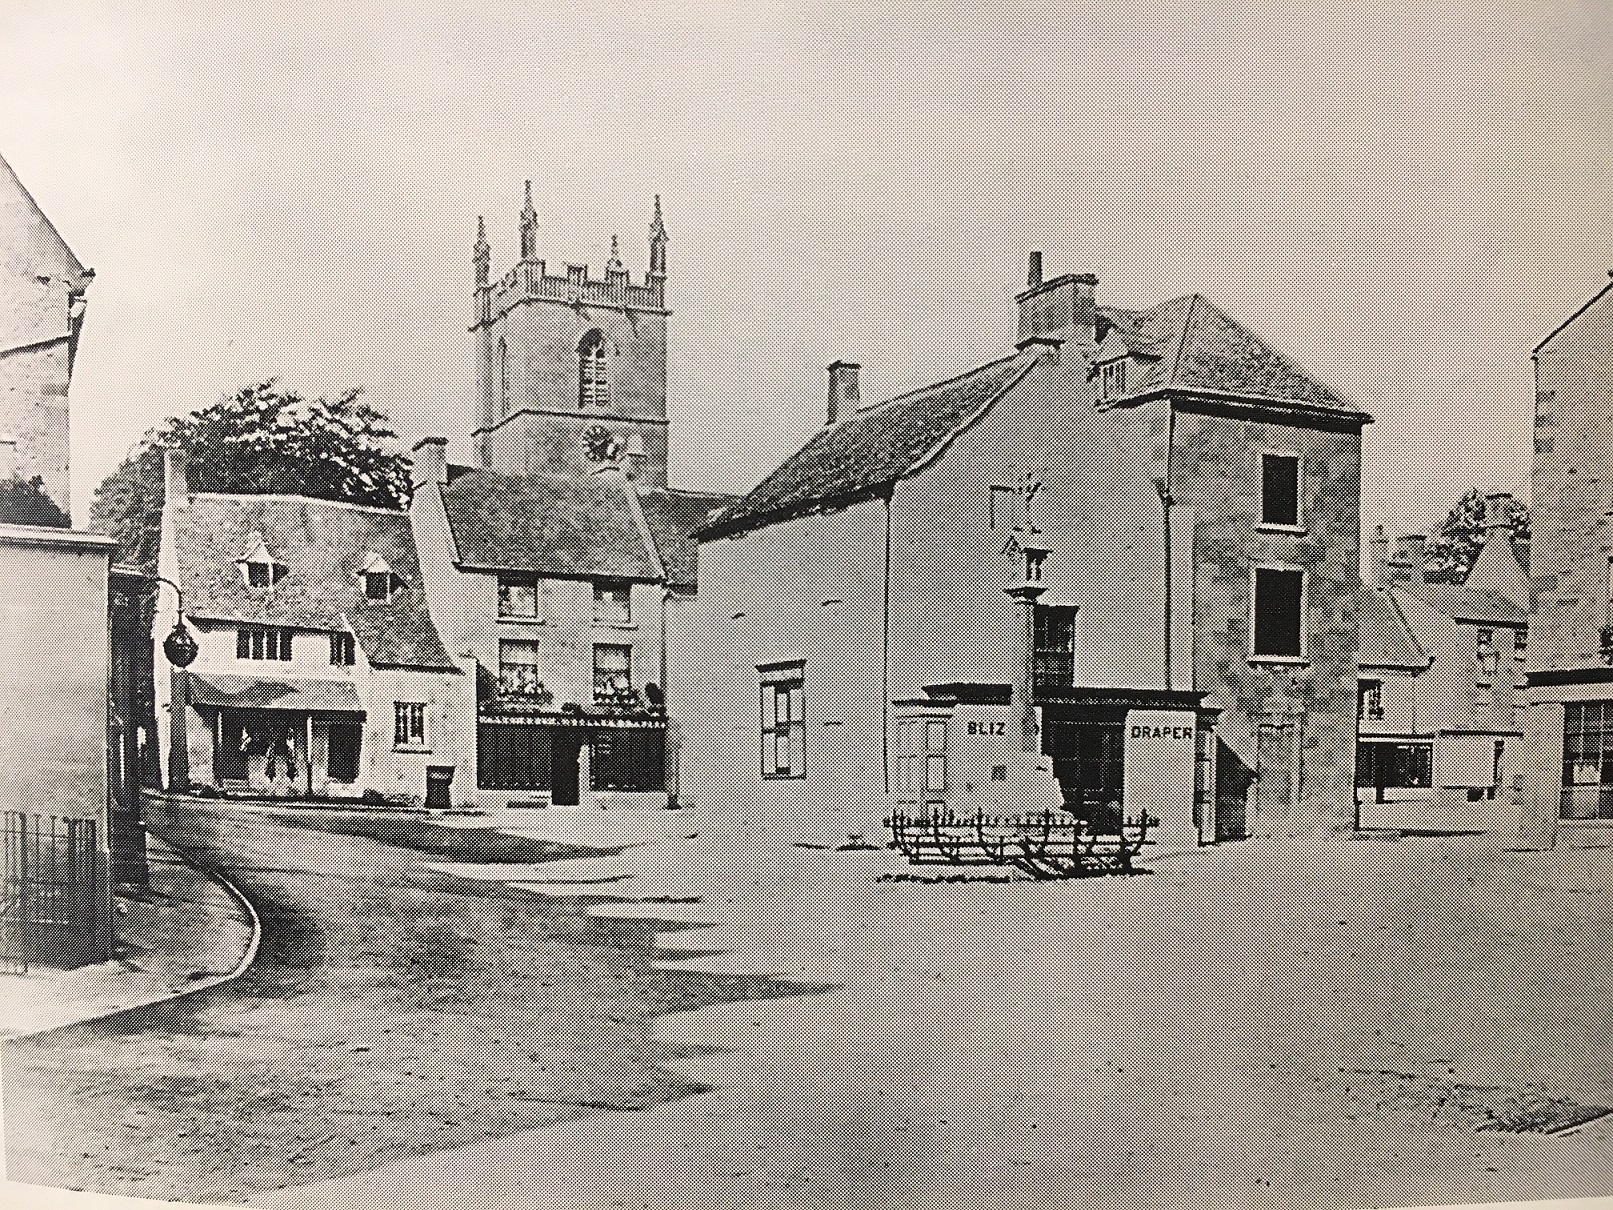 The Old Courthouse, far left, c.1885. At this time being used as a butcher's shop